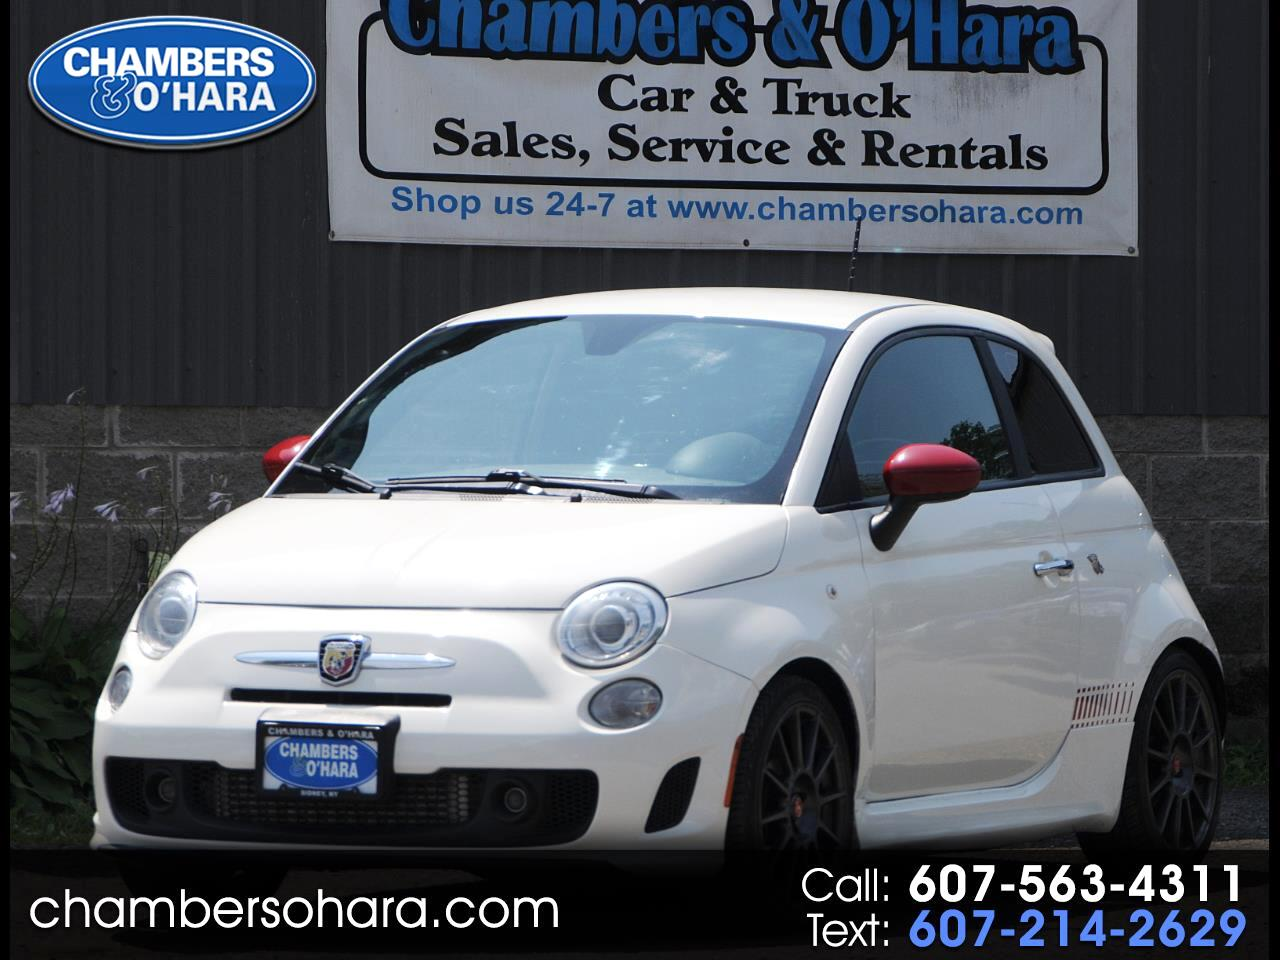 used cars for sale sidney ny 13838 chambers o hara chambers o hara